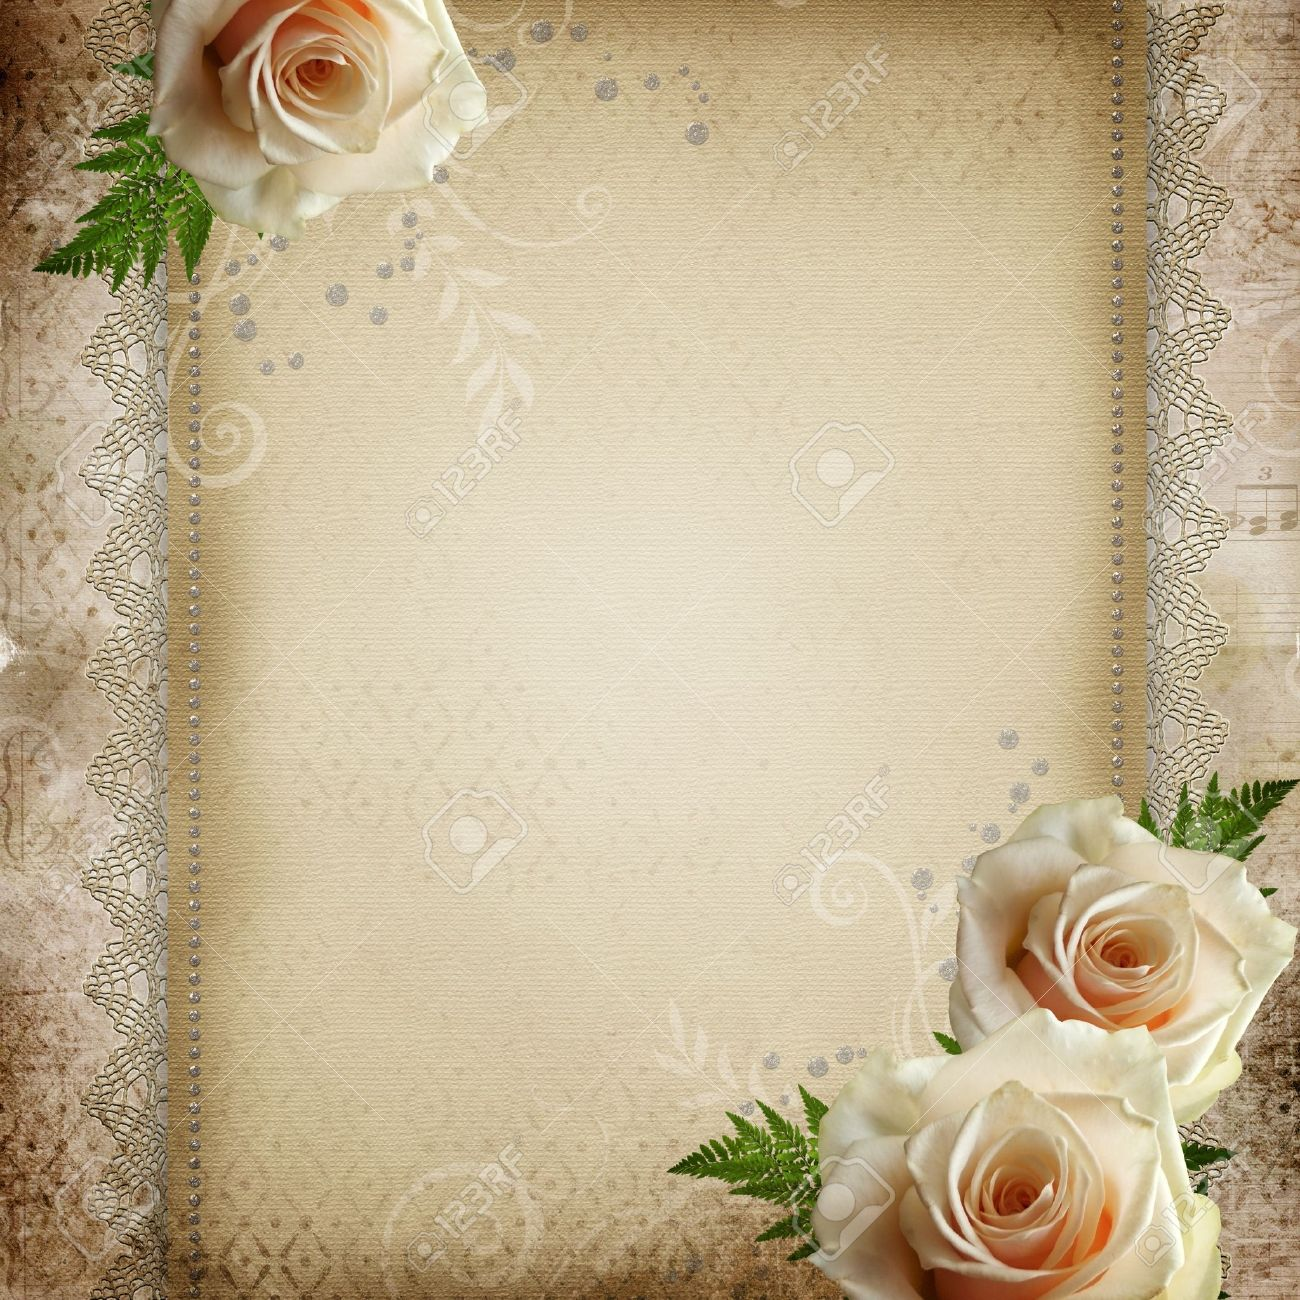 Vintage Beautiful Wedding Background Stock Photo Picture And Royalty Free Image Image 11511894